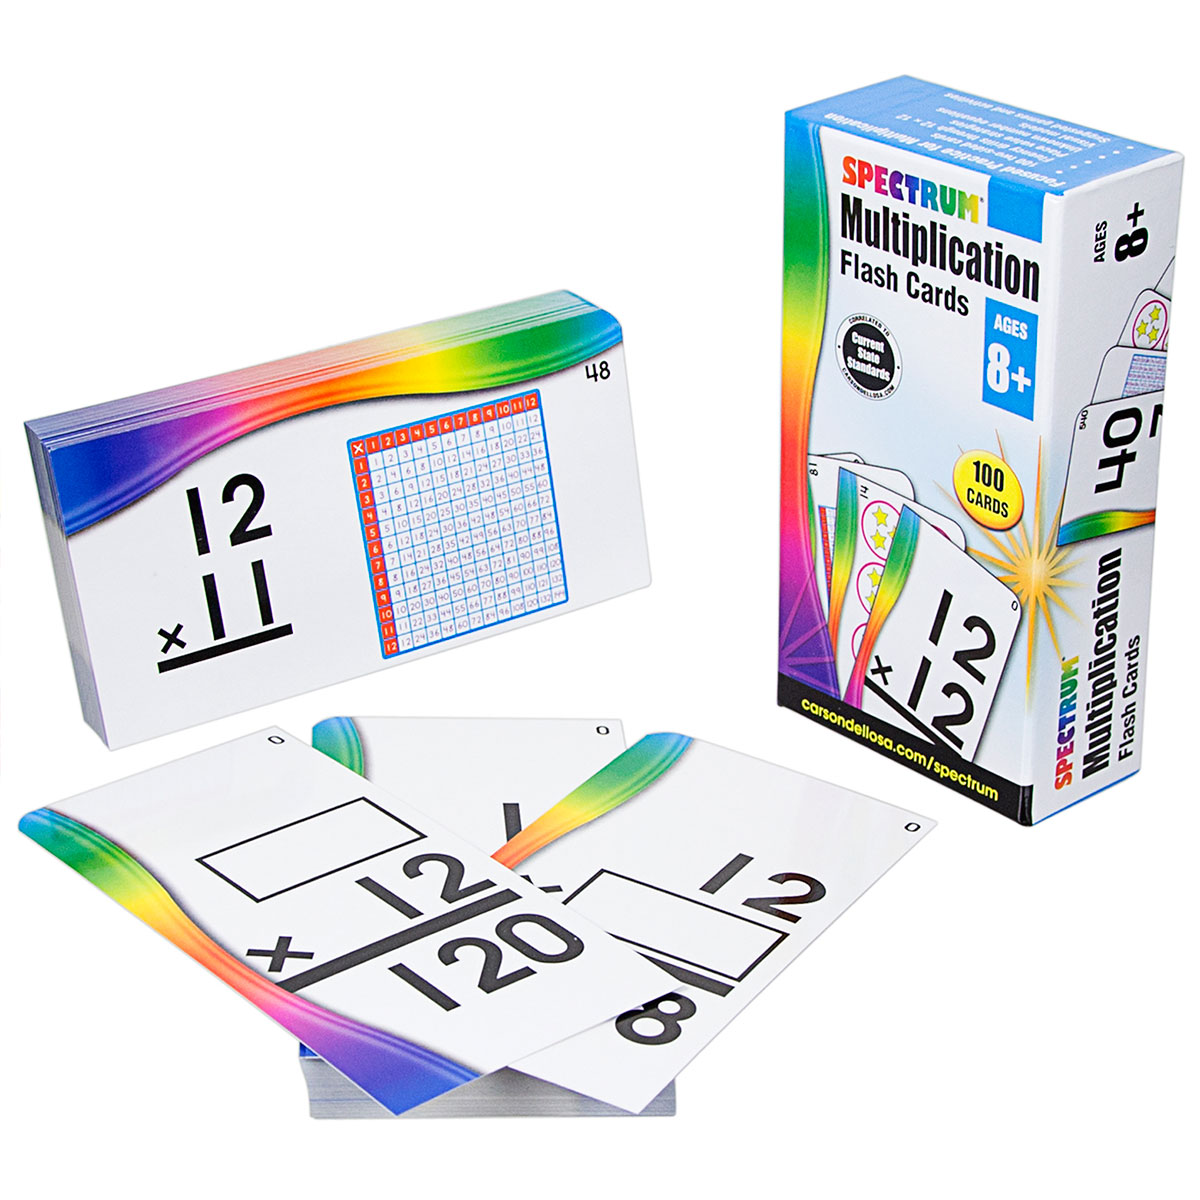 Flash Cards Packs - Multiplication